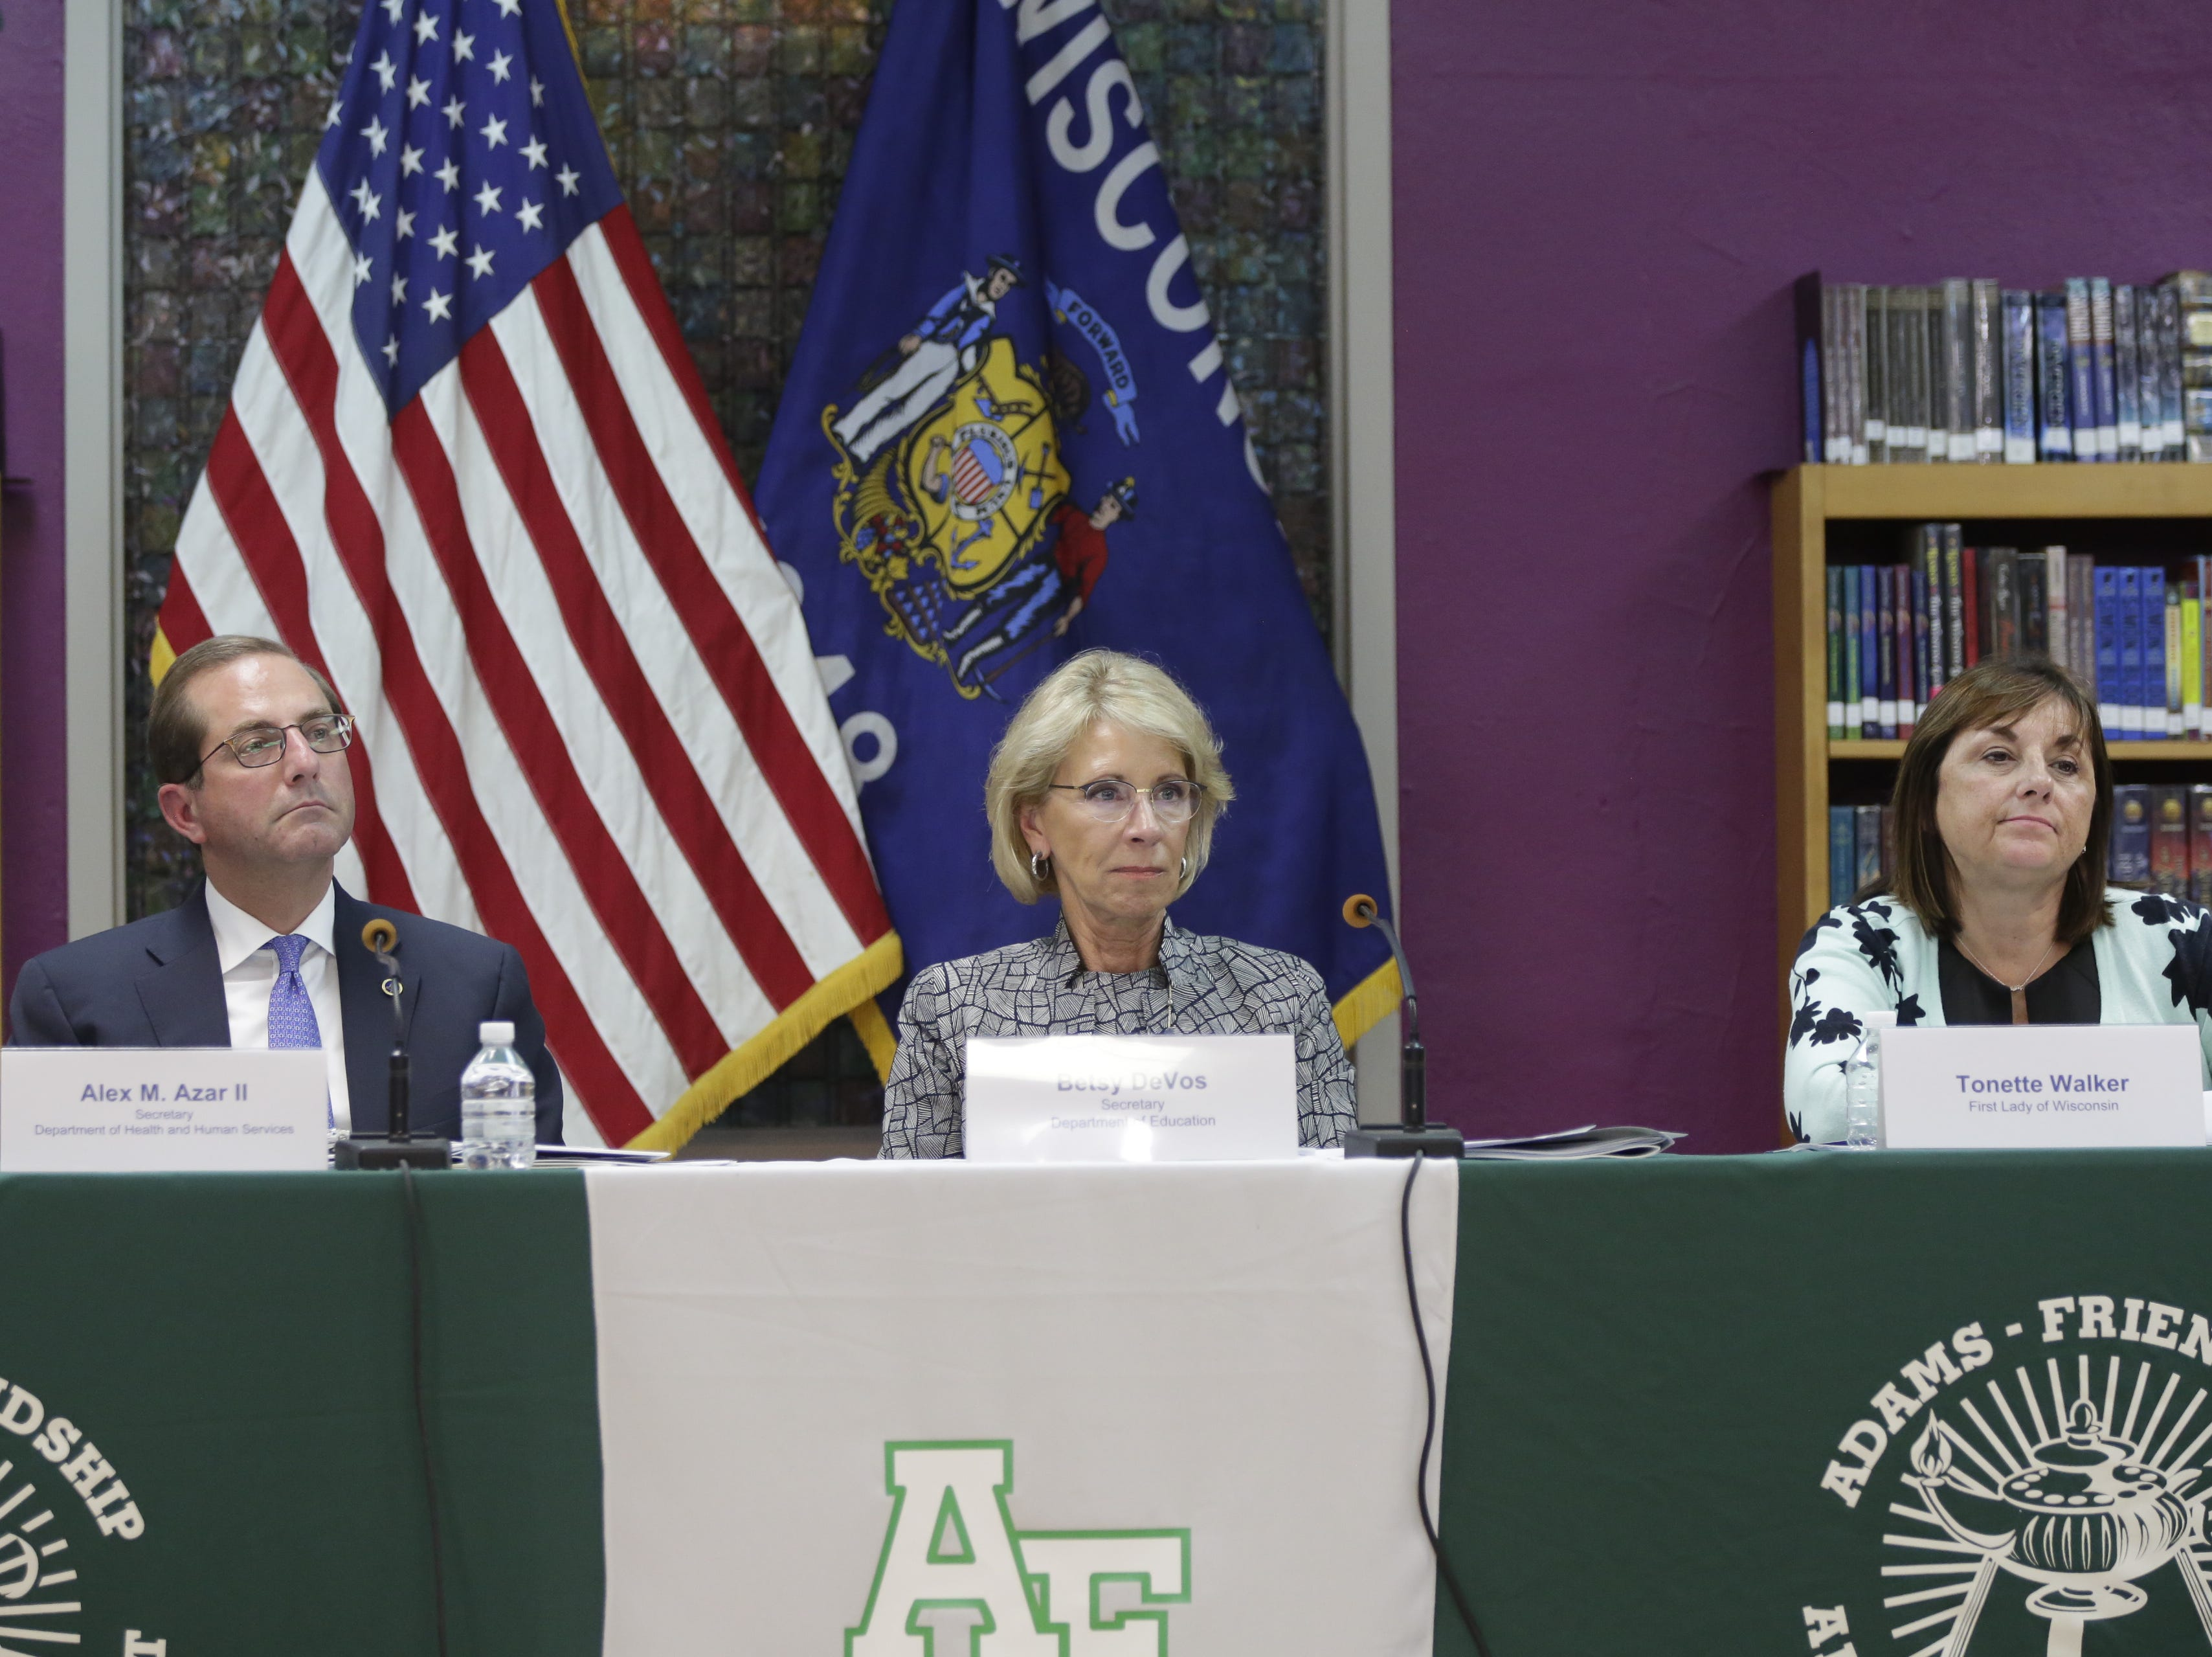 Alex Azar, Secretary of the Department of Health and Human Services, Betsy DeVos, U.S. Secretary of Education and Wisconsin first lady Tonette Walker, listen as a panel speaks to them at Adams-Friendship Middle School in Adams, Wis. Tuesday, July 24, 2018.